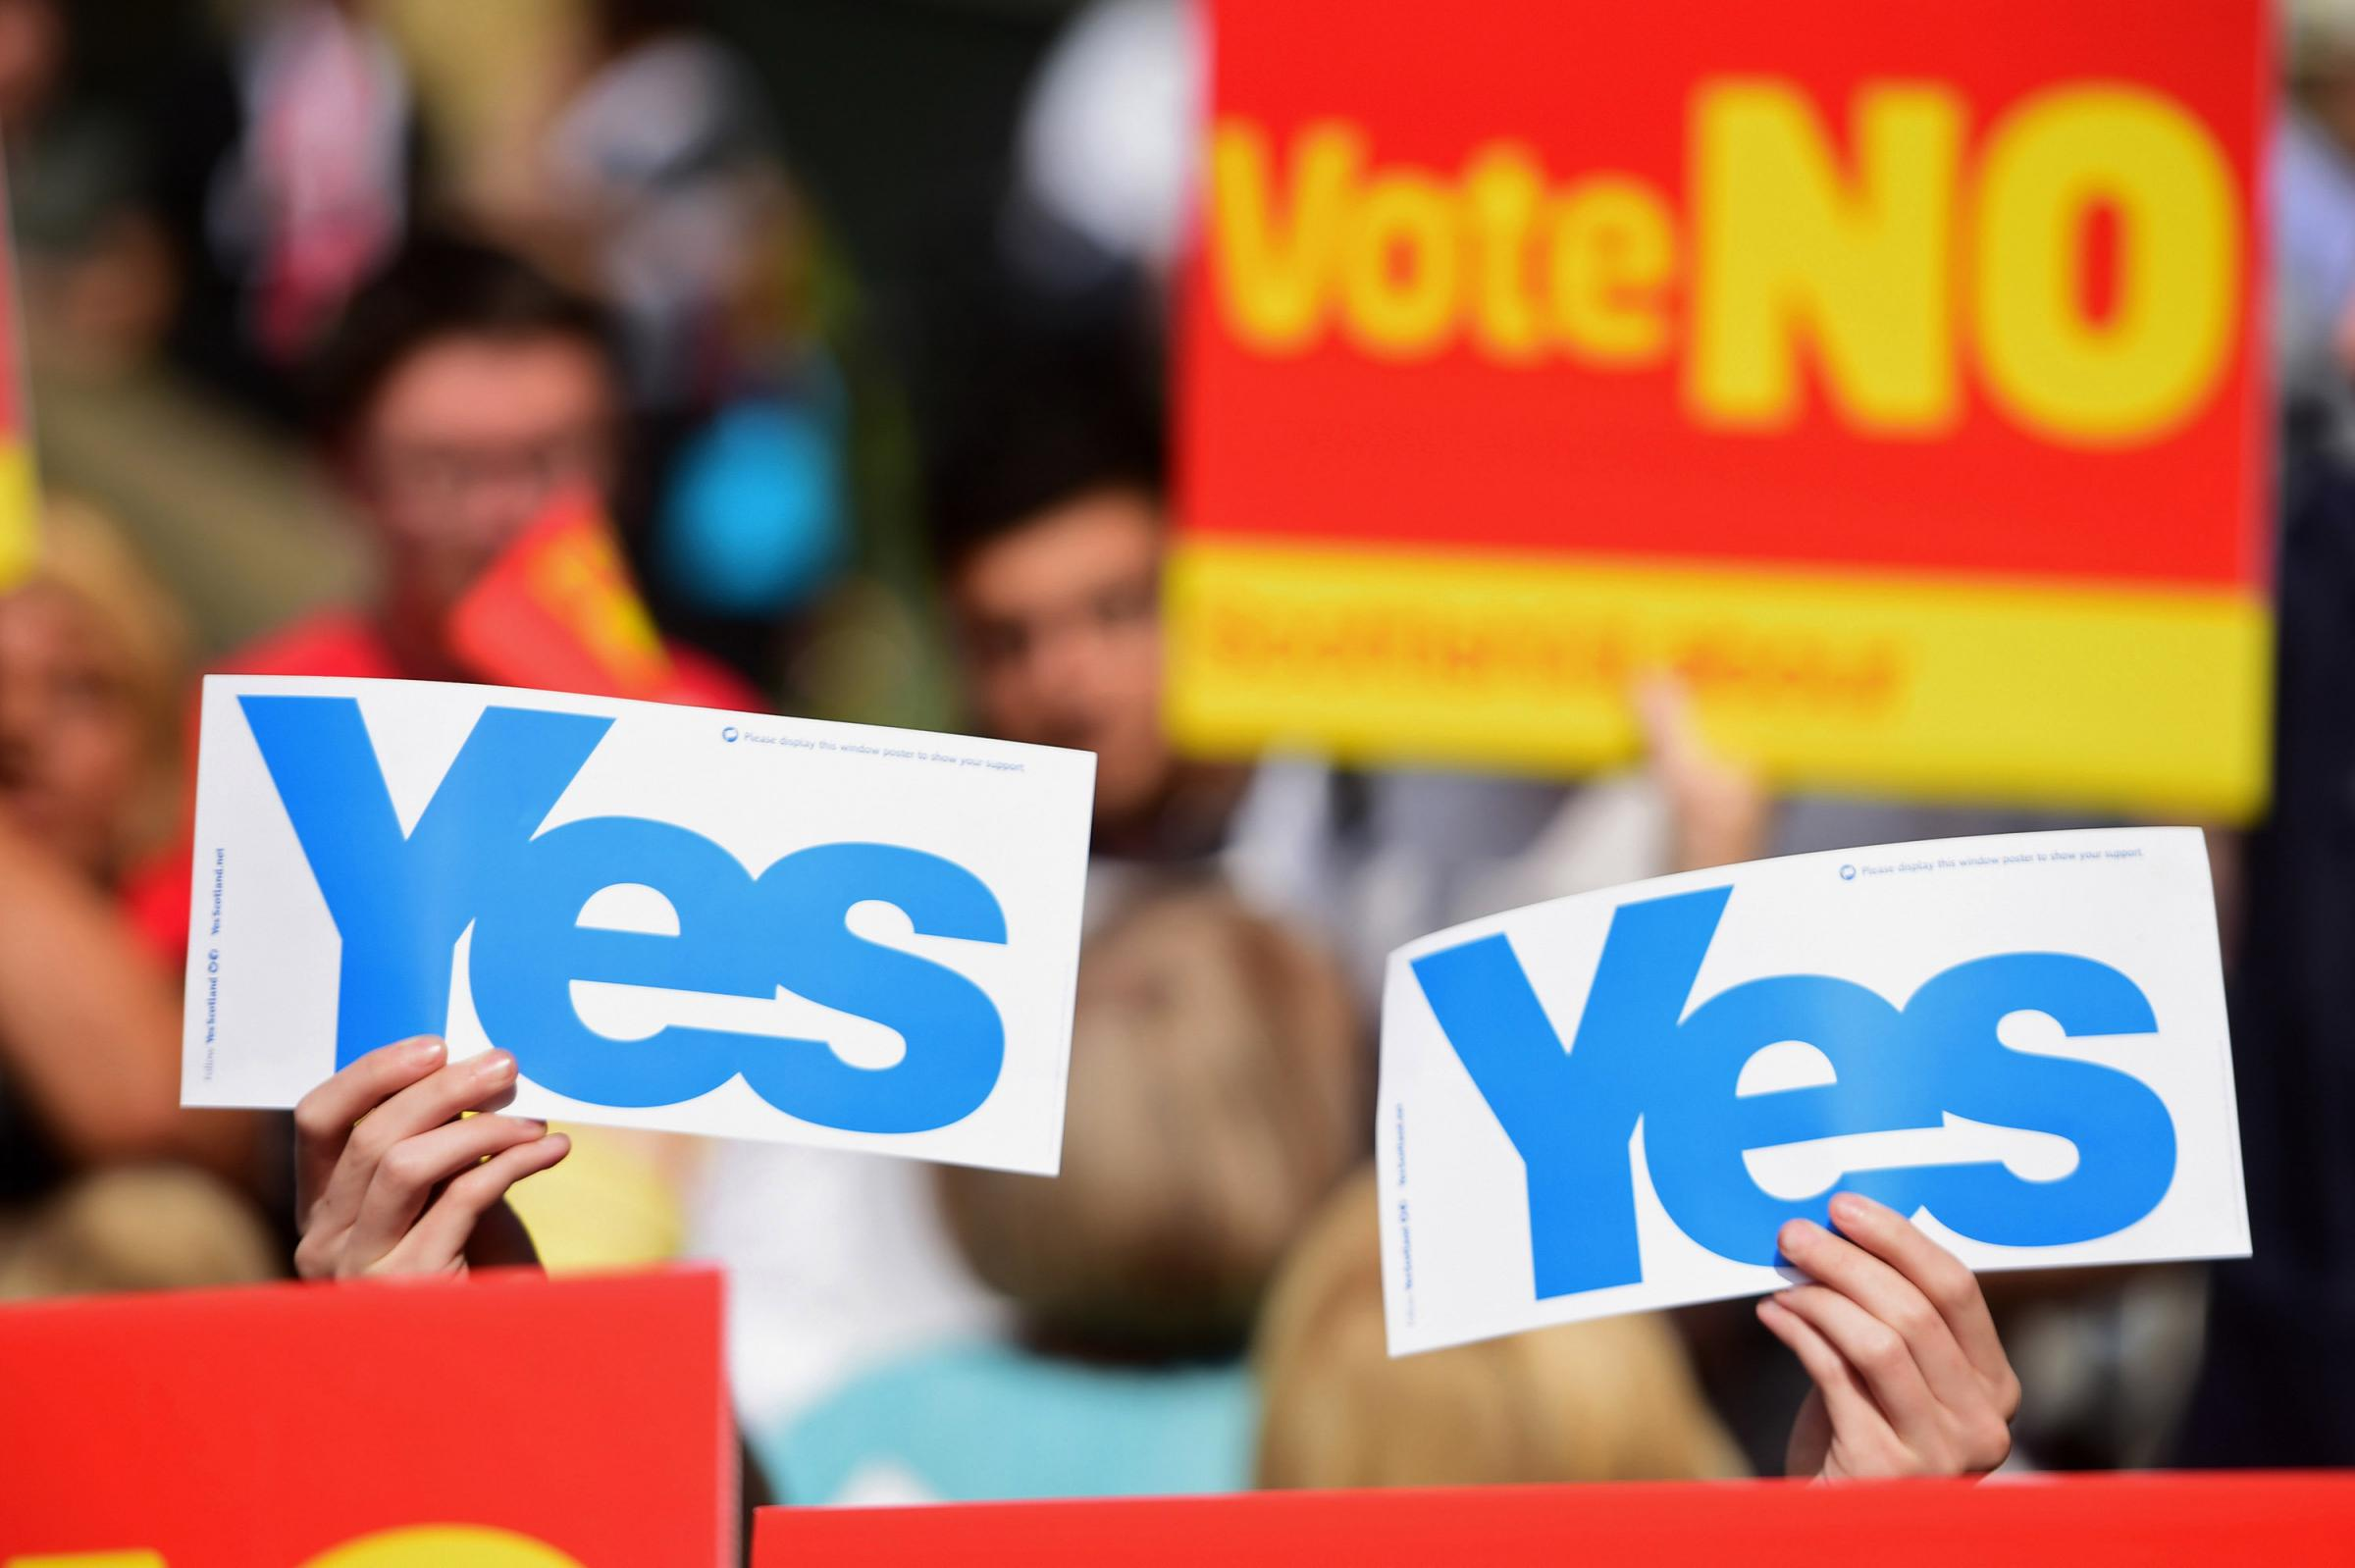 Explode the myth that Scotland is a servant to the English master